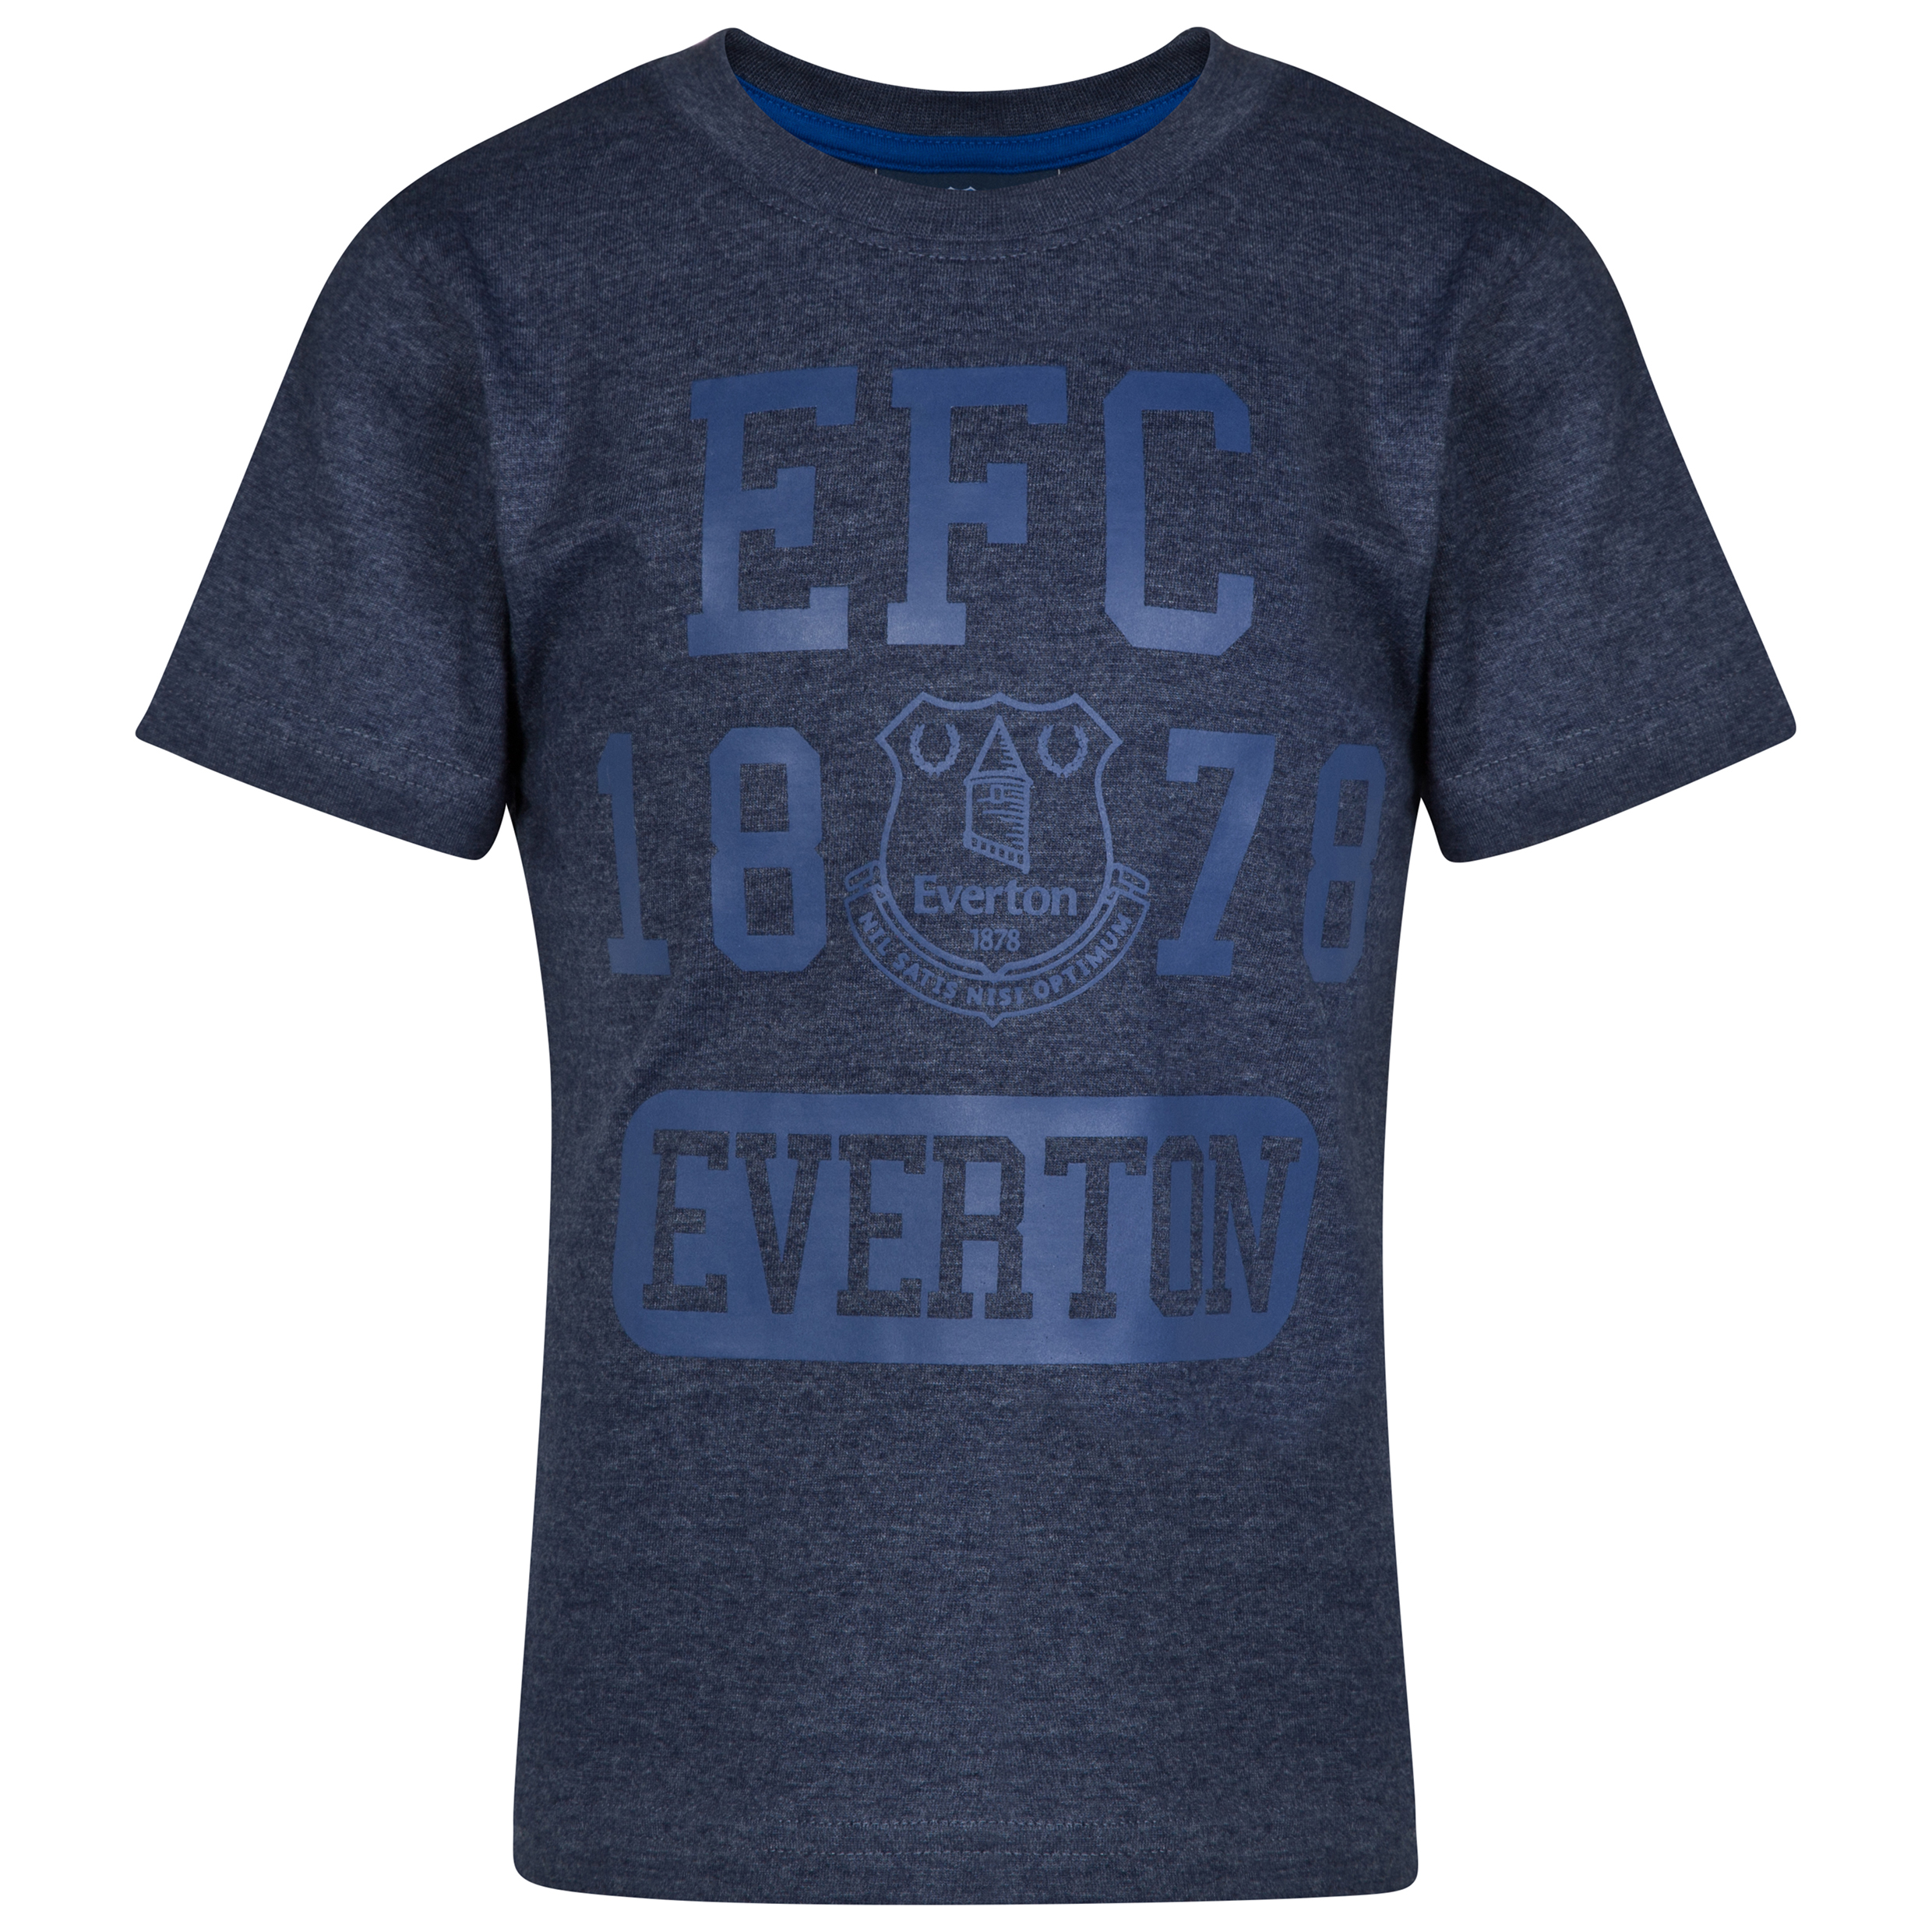 Everton Essential T-Shirt - Heather Navy - Infant Boys